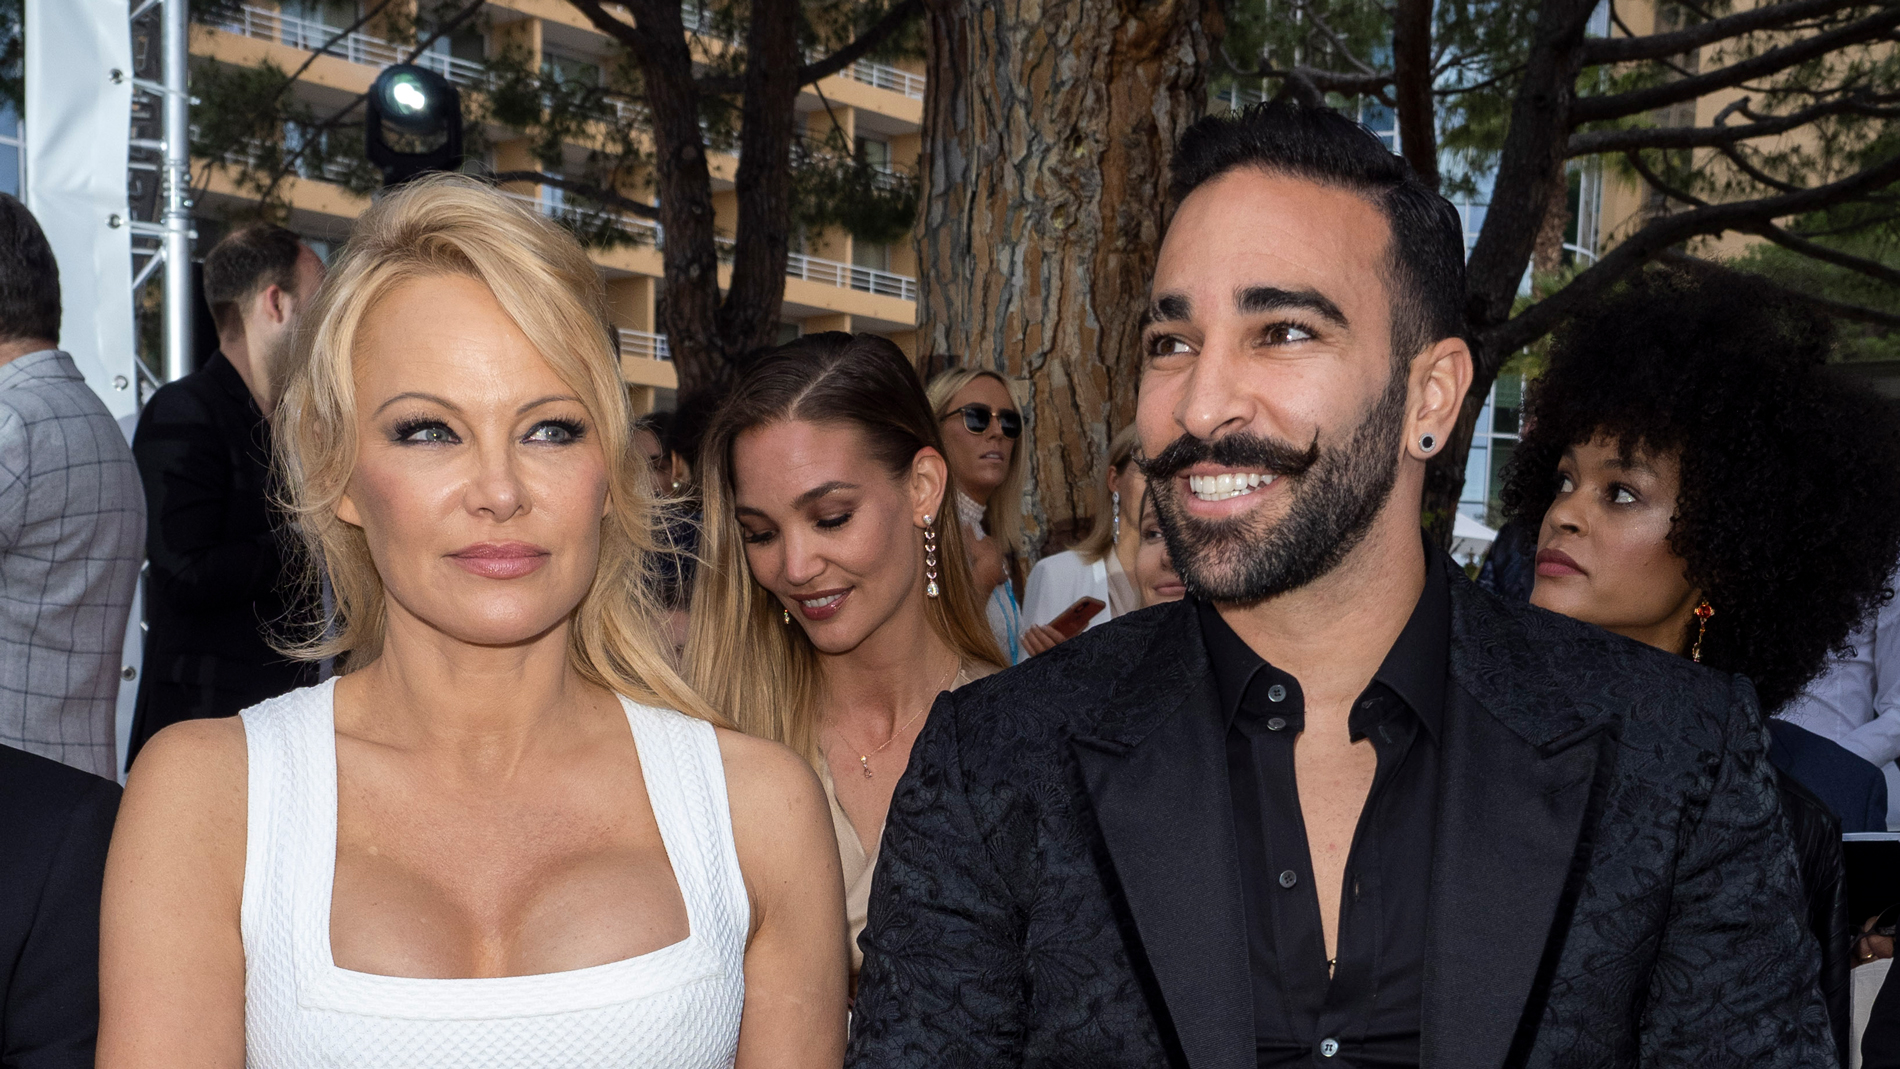 Pamela Anderson splits from soccer star boyfriend Adil Rami after cheating accusations